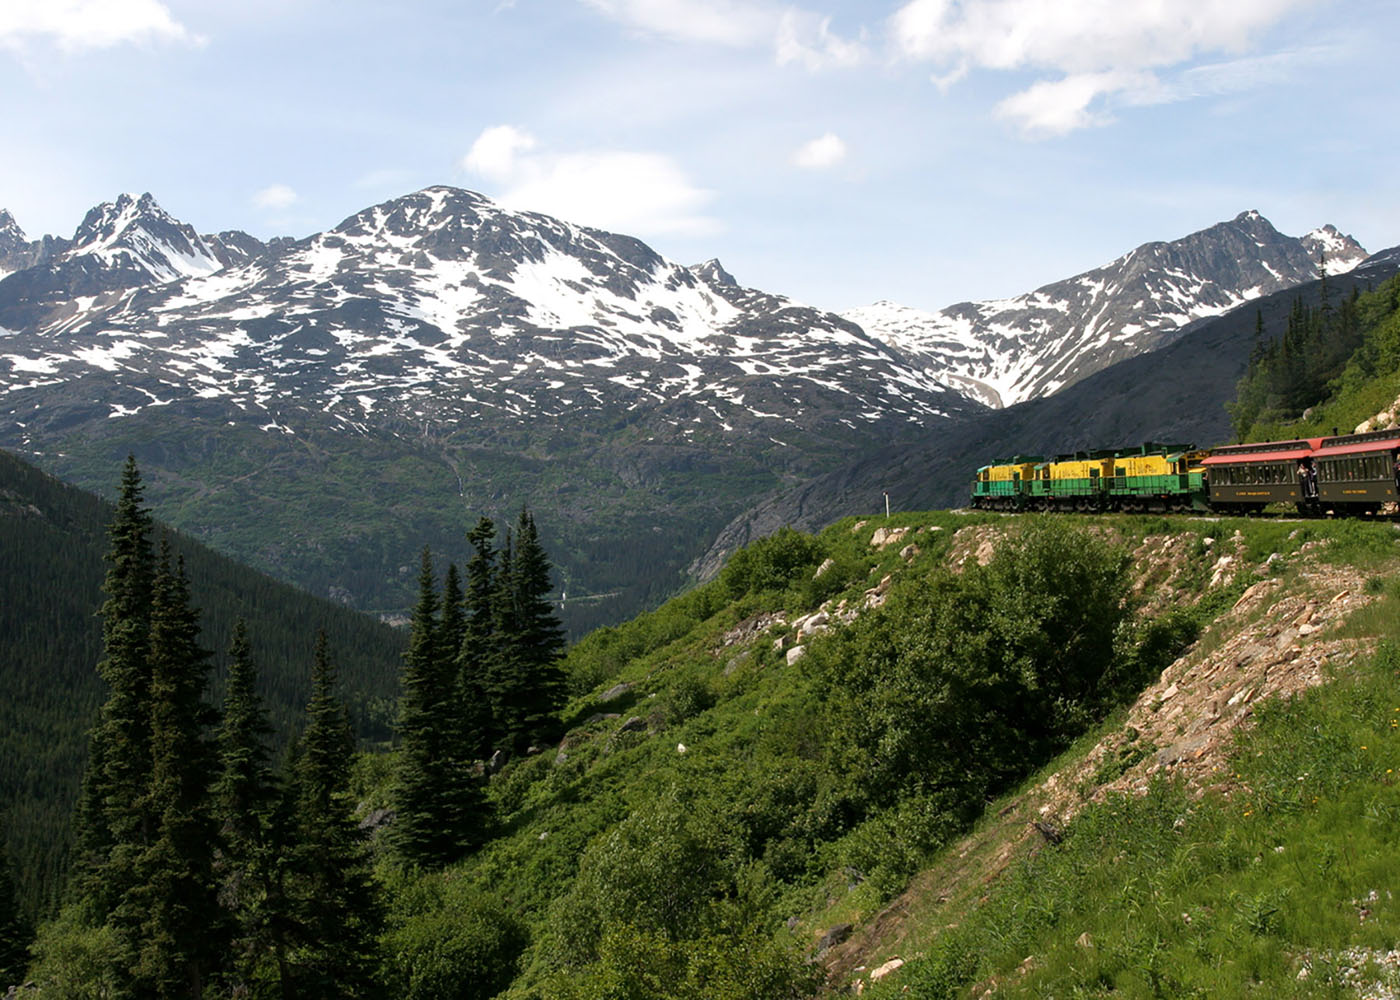 The White Pass train makes its way along the White Pass and Yukon Route Railway